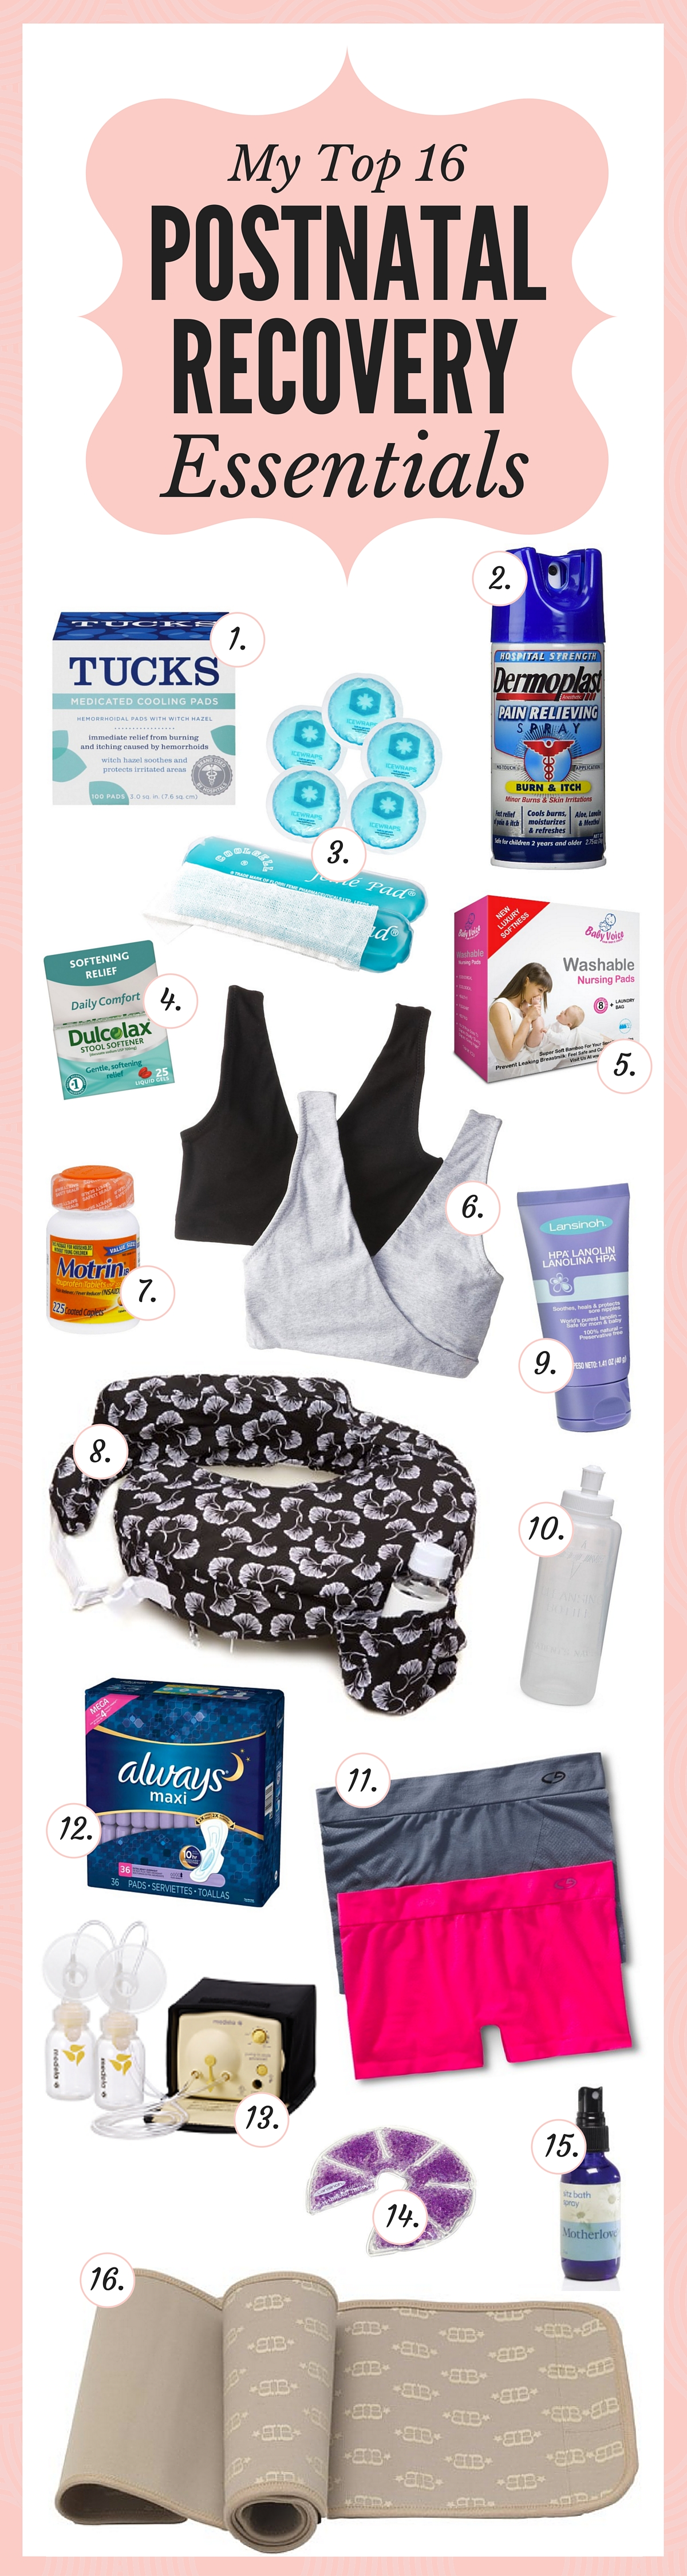 My top 16 postnatal recovery essentials